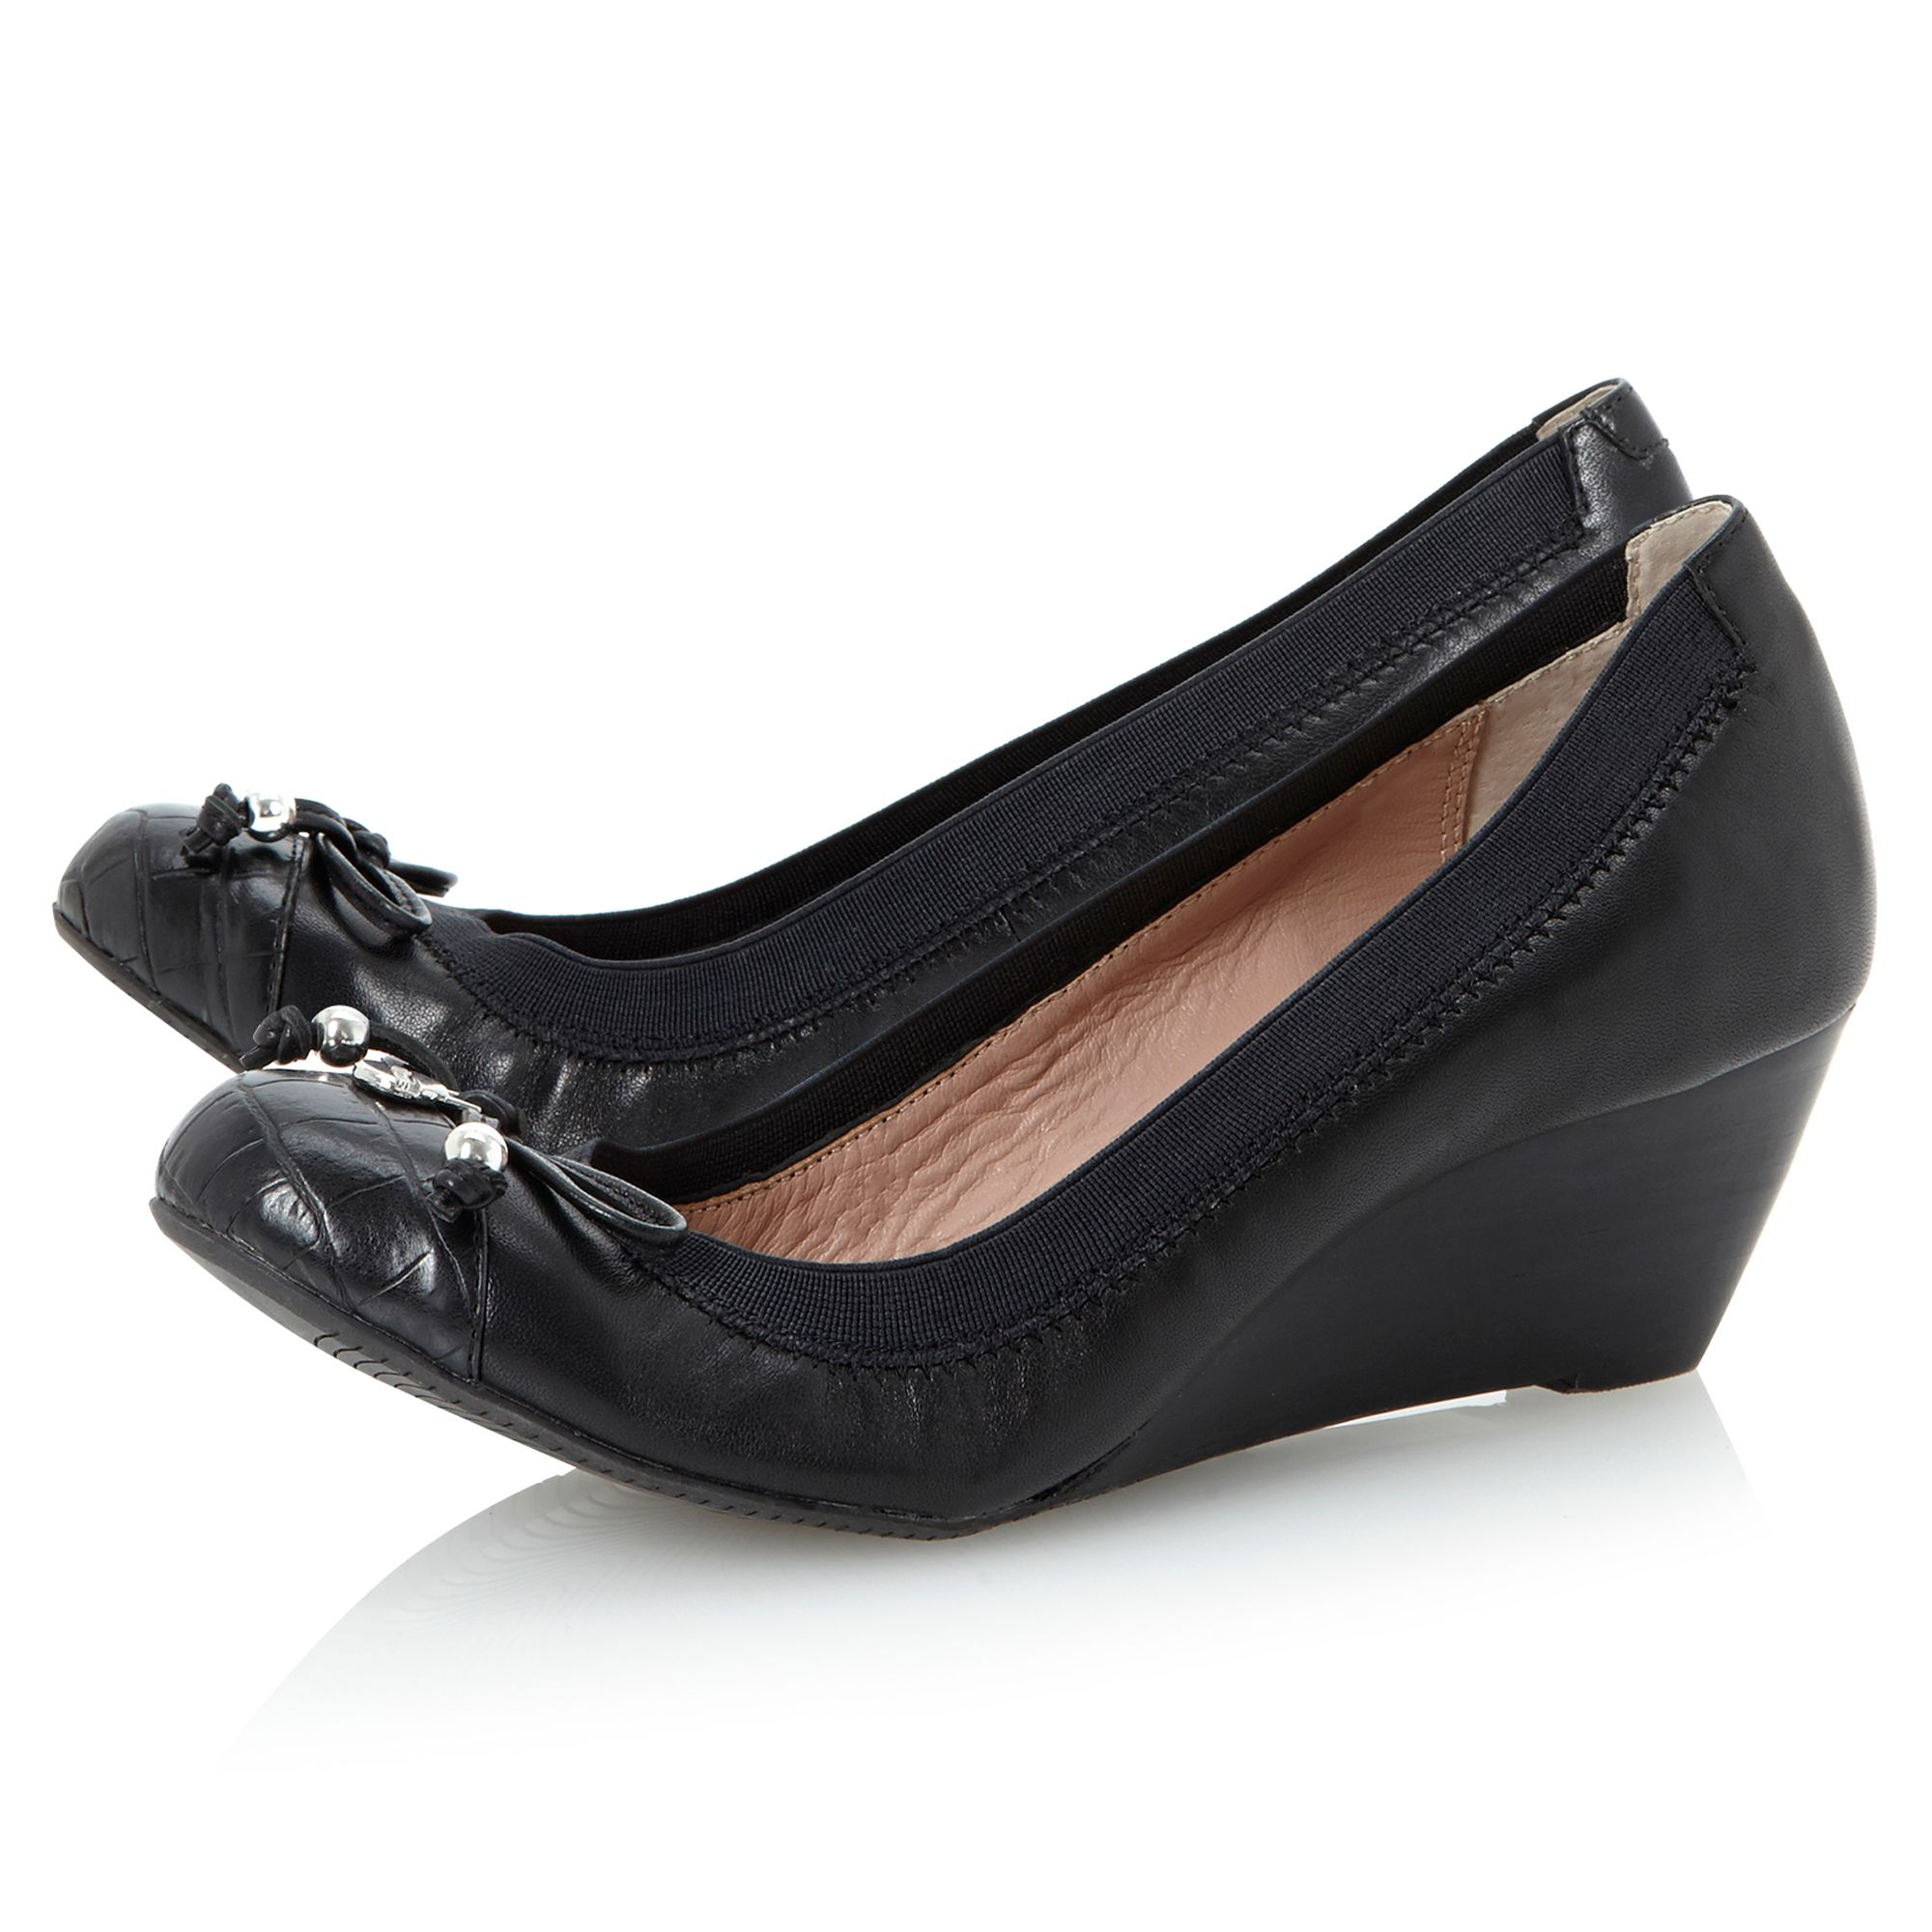 Attic round toecap wedge court shoes